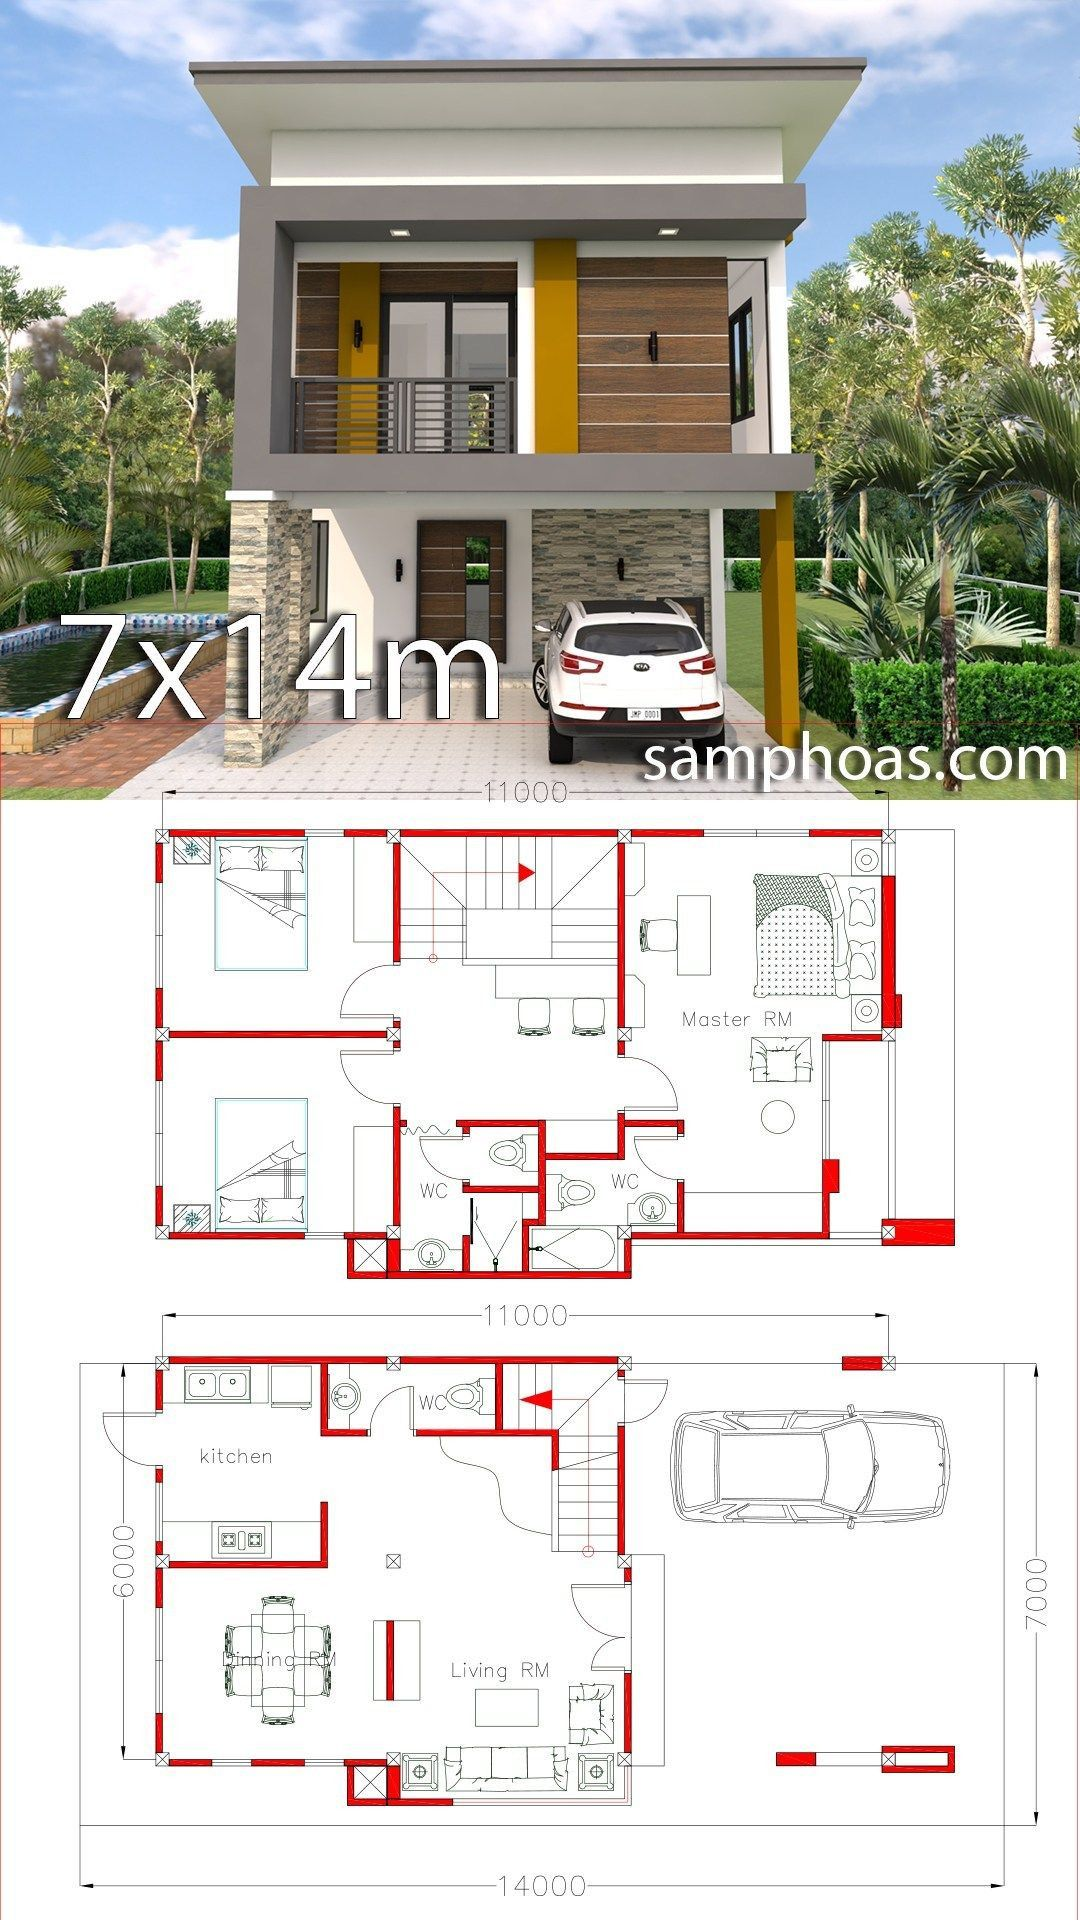 Simple Small House Design 2020 Tiny Modern House Plans Small House Design Plans Small House Design